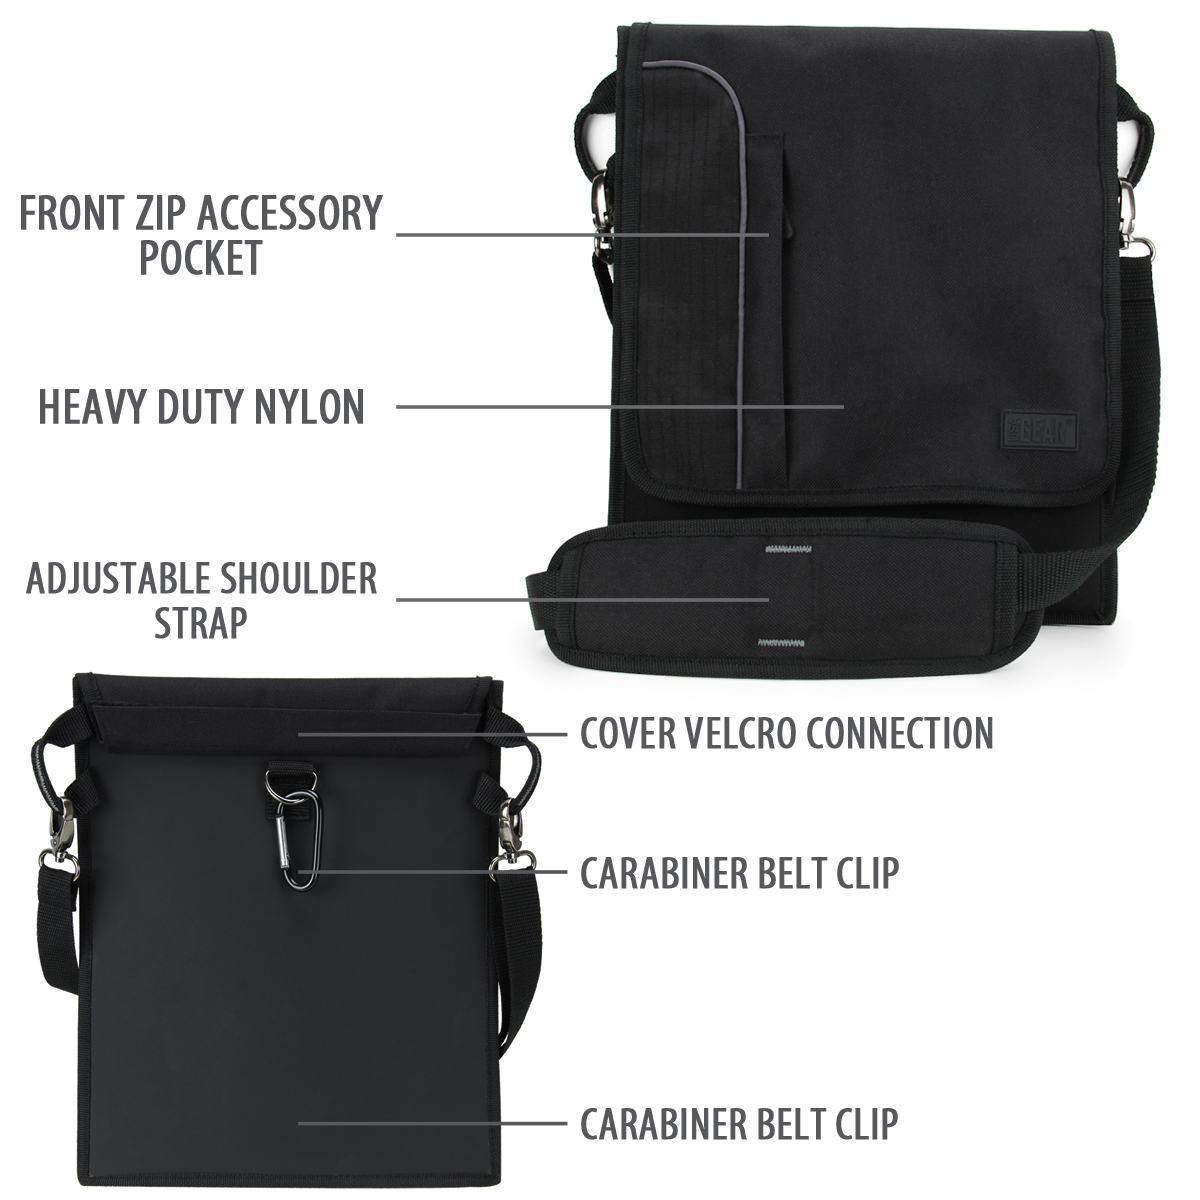 Professional Shoulder Sling Tablet Case Messenger Bag By Usa Gear With Carrying Adjule Strap Black Material Perfect For The Dell Laude 5285